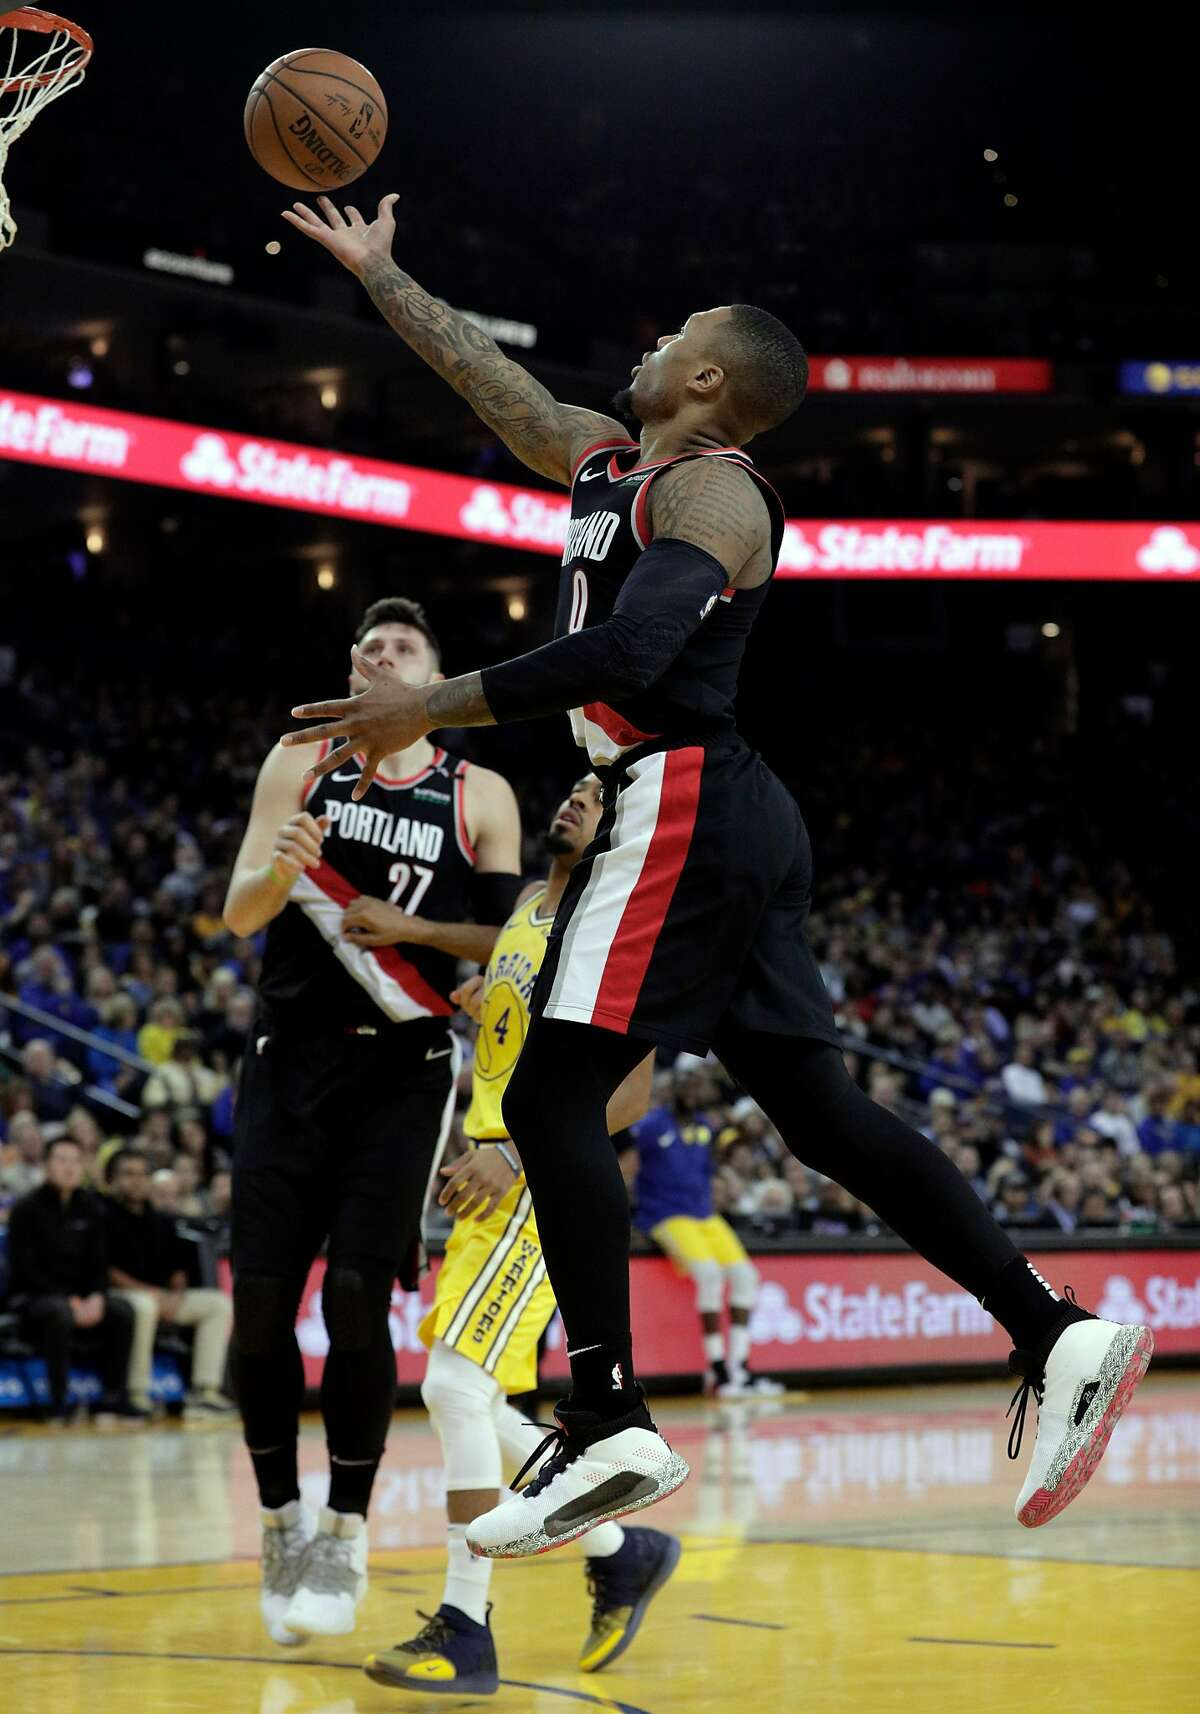 Damian Lillard (0) floats in a layup in the first half as the Golden State Warriors played the Portland Trailblazers at Oracle Arena in Oakland, Calif., on Thursday, December 27, 2018.